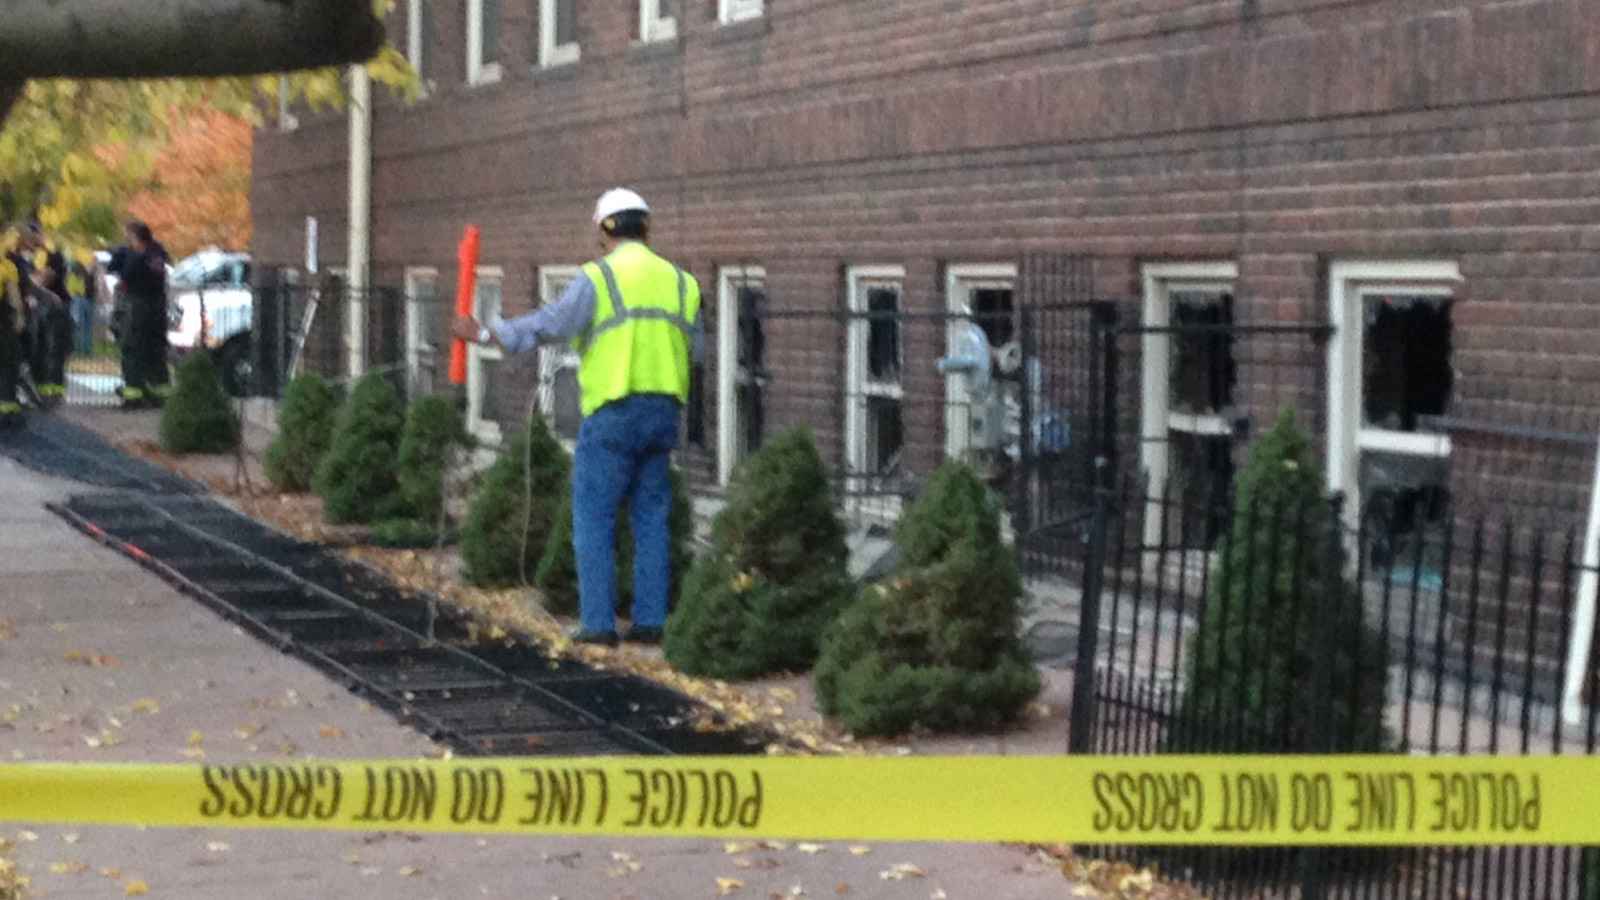 One woman was taken to the hospital after an explosion inside an apartment near 14th and Logan (credit: CBS)